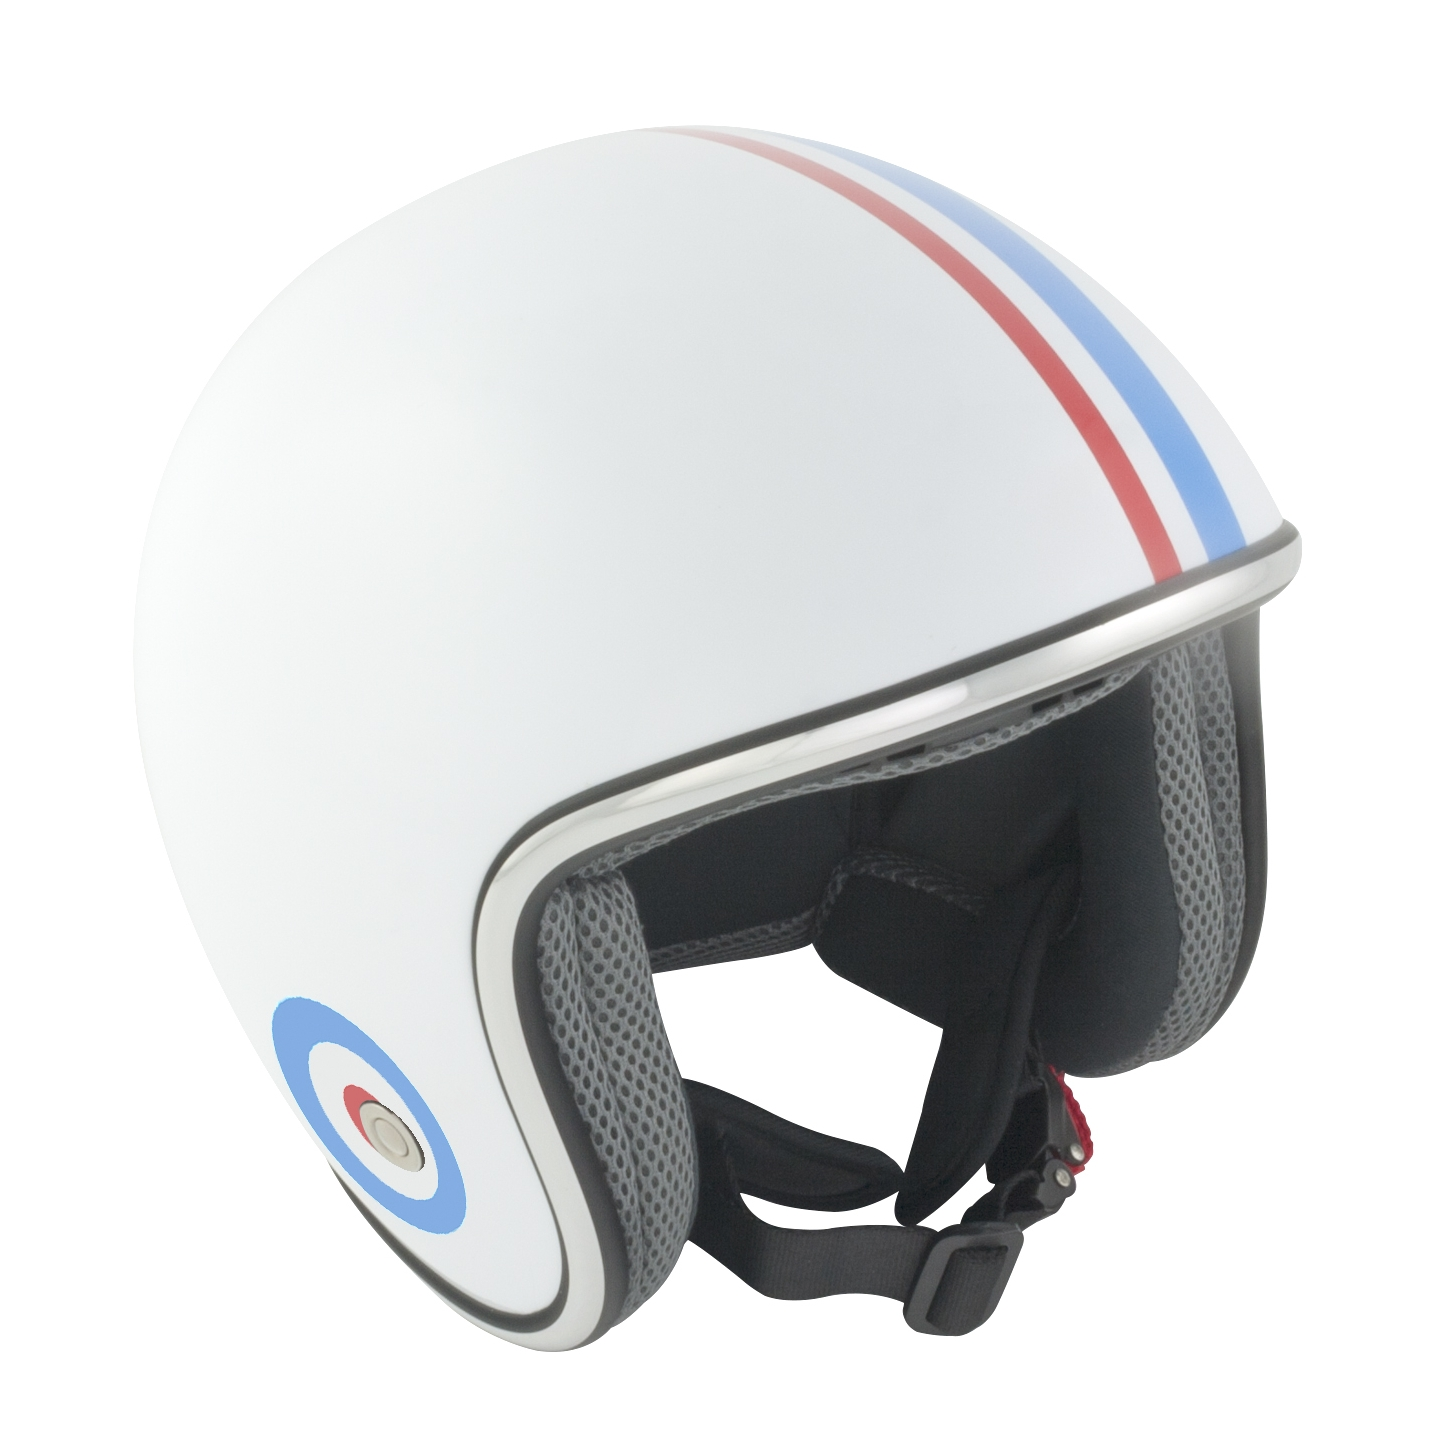 gsb open face scooter helmet mod retro style for vespa. Black Bedroom Furniture Sets. Home Design Ideas